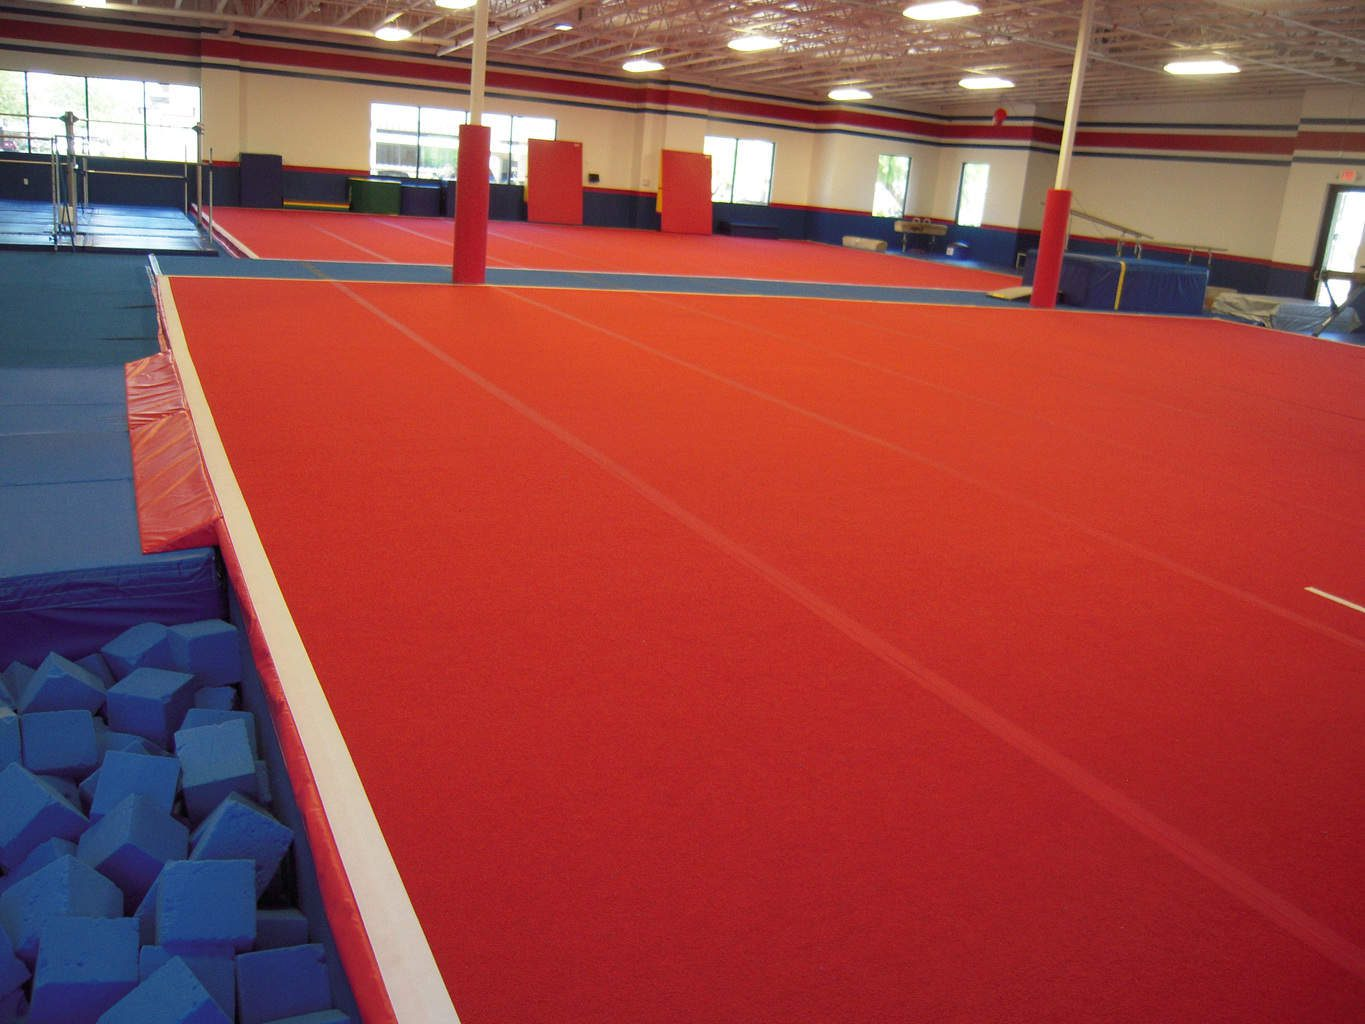 USA Youth Fitness Center Gymnastics Spring Floor